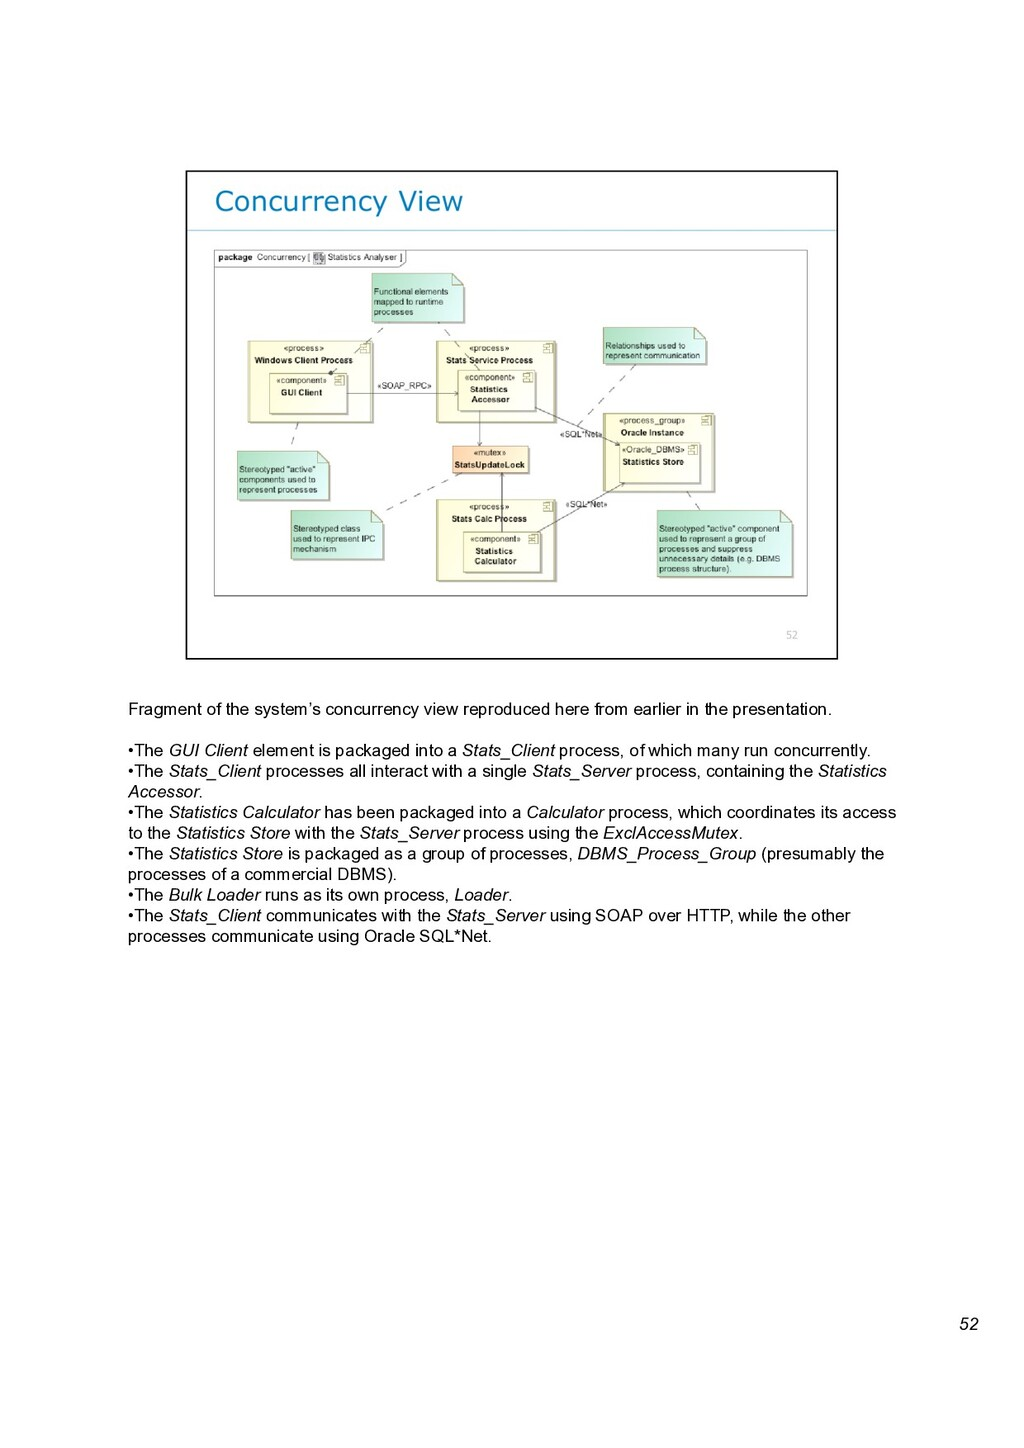 52 Fragment of the system's concurrency view re...